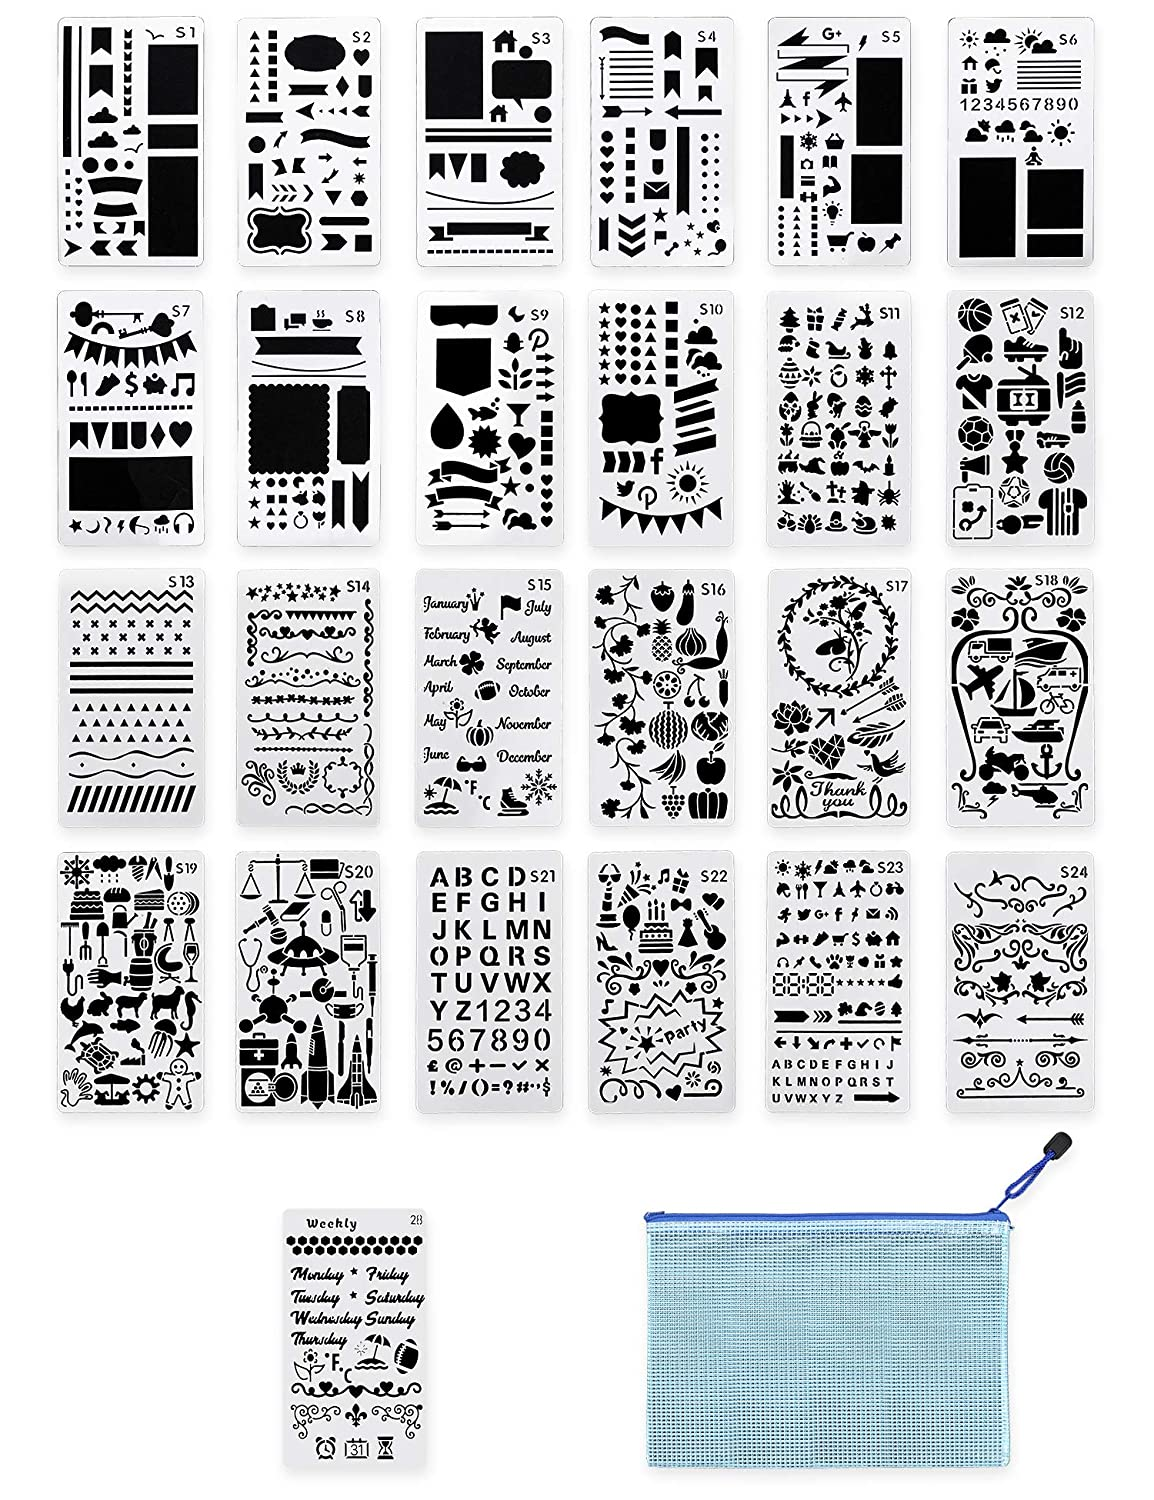 photo relating to Diy Planner Templates titled LIDAGO 25 Components Magazine Stencil Do it yourself Diary Drawing Template Plastic Planner Templates with 1 Storage Bag for Laptop computer, Diary, Sbook,Includes